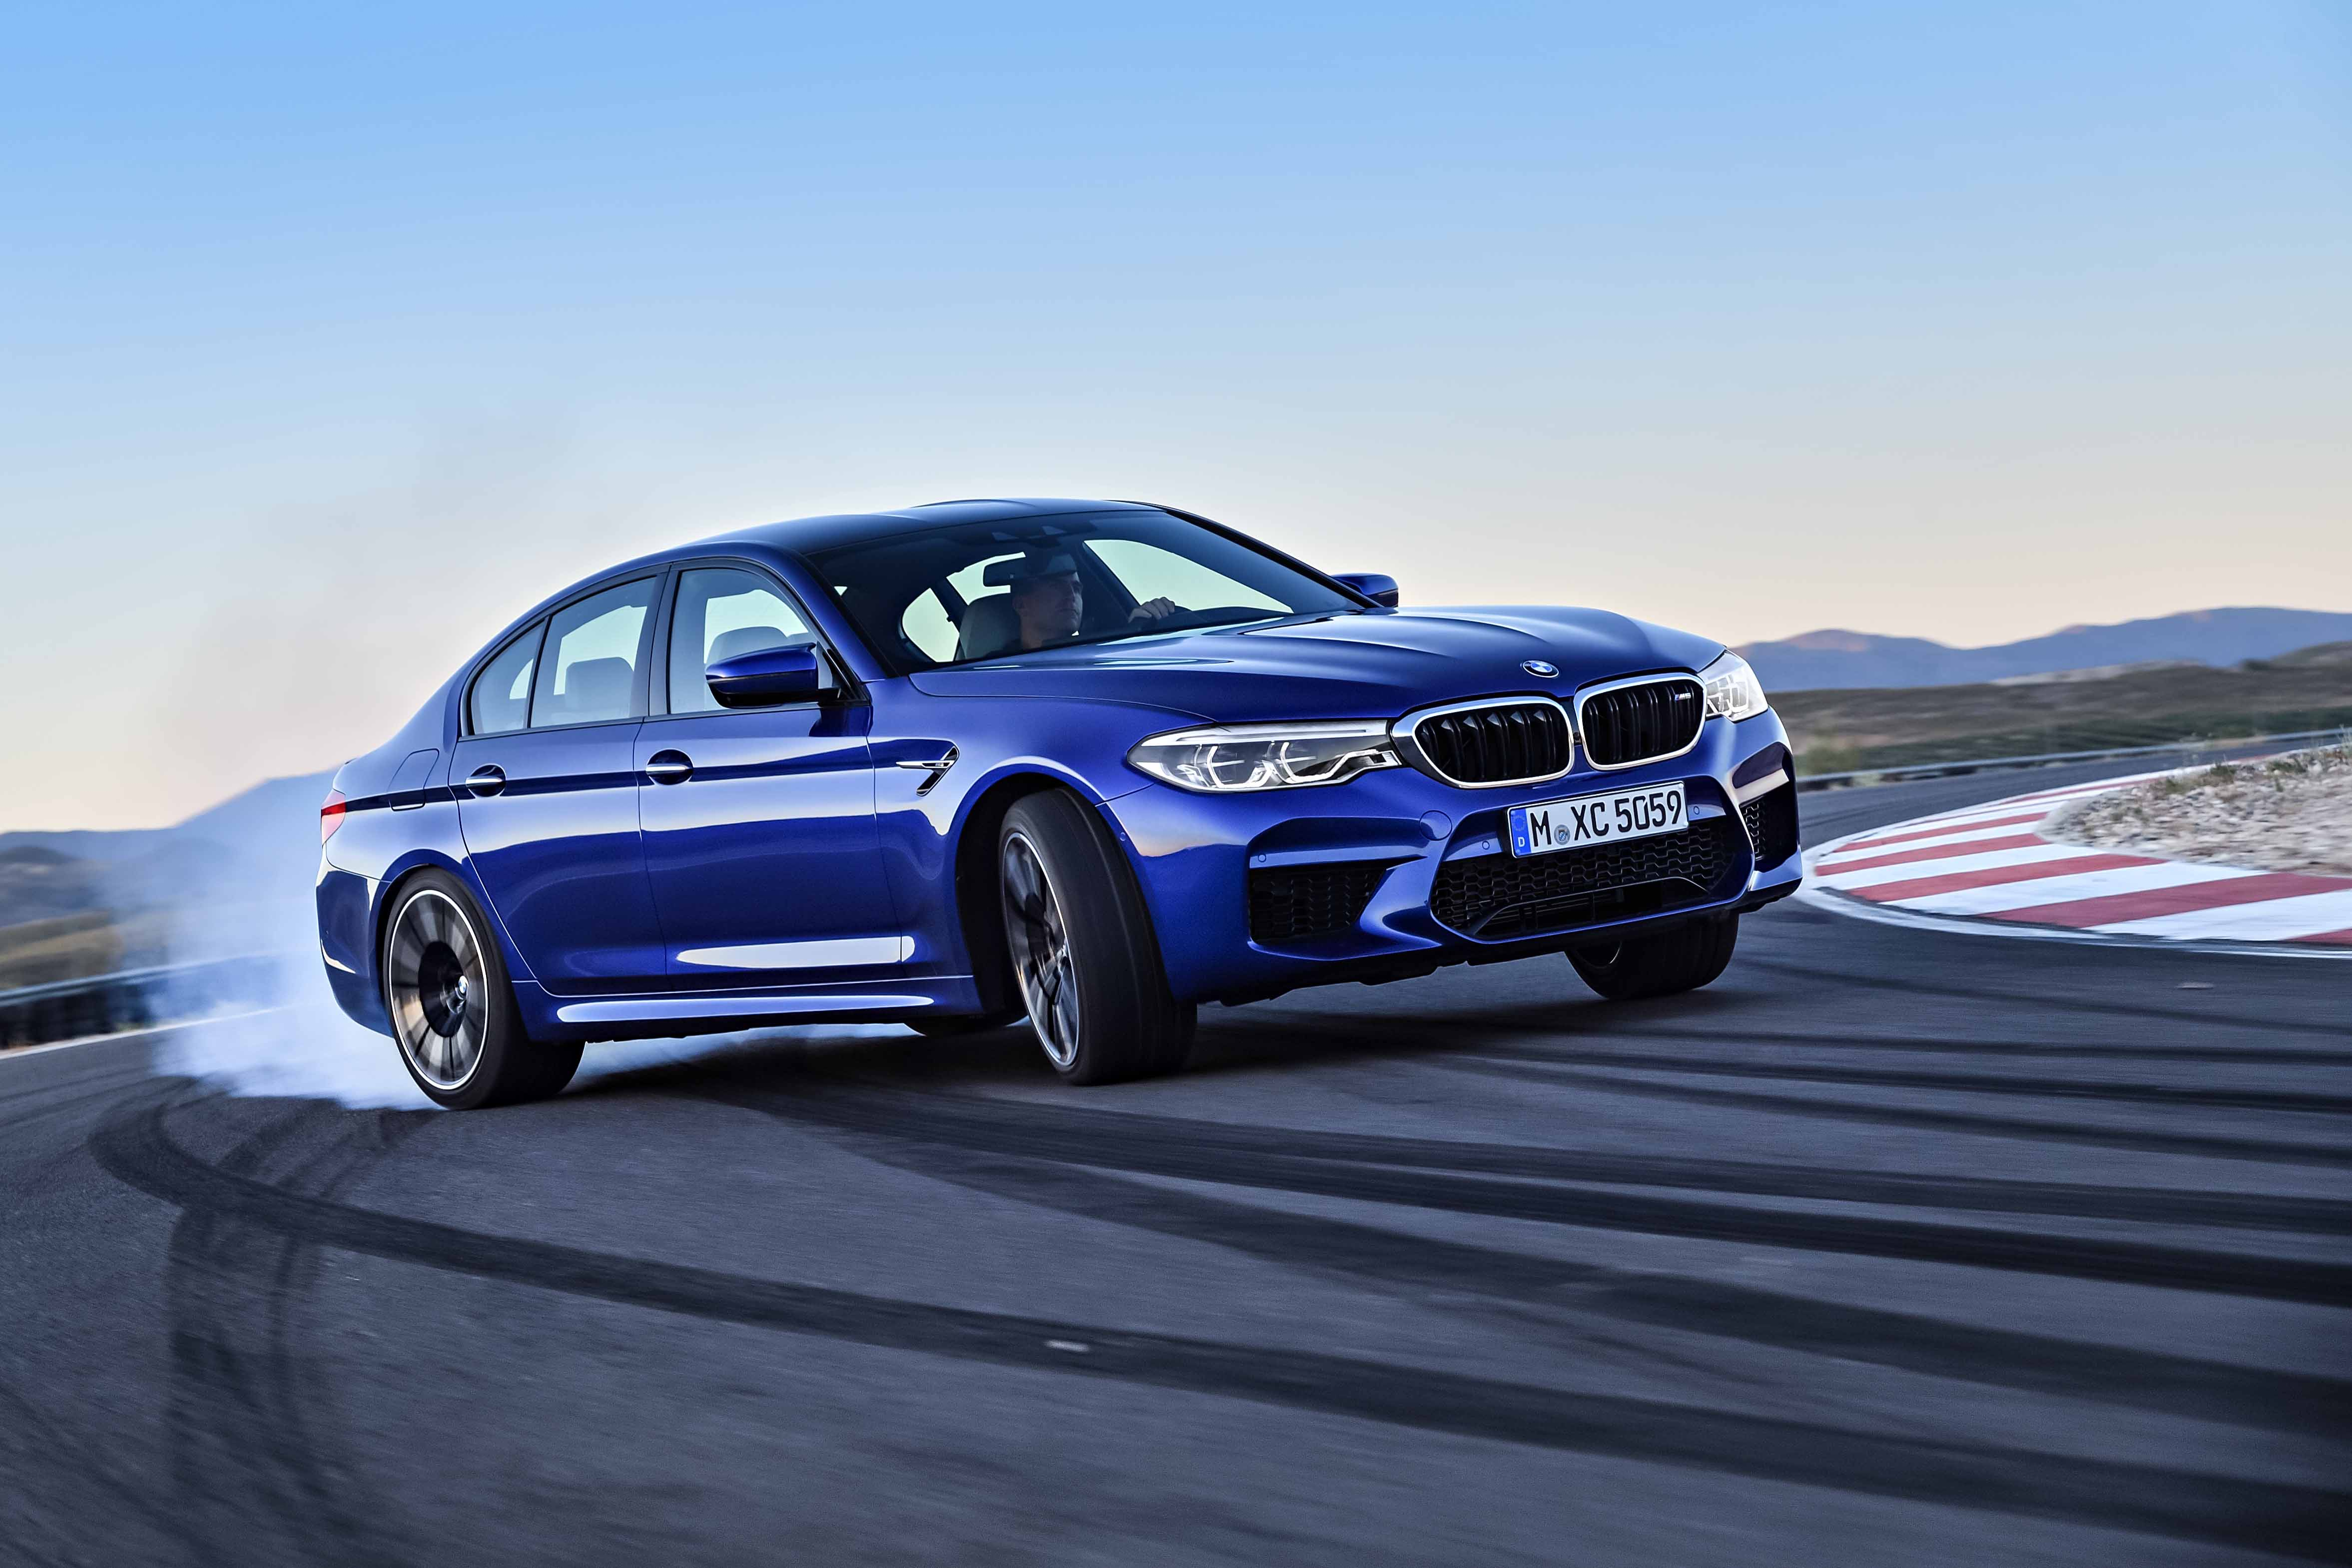 2018 bmw 0 60.  2018 the 6th generation bmw m5 runs 0u201360 mph in 32 seconds 0u2013124 111  seconds and has a top speed of 189 with optional m driveru0027s package to 2018 bmw 0 60